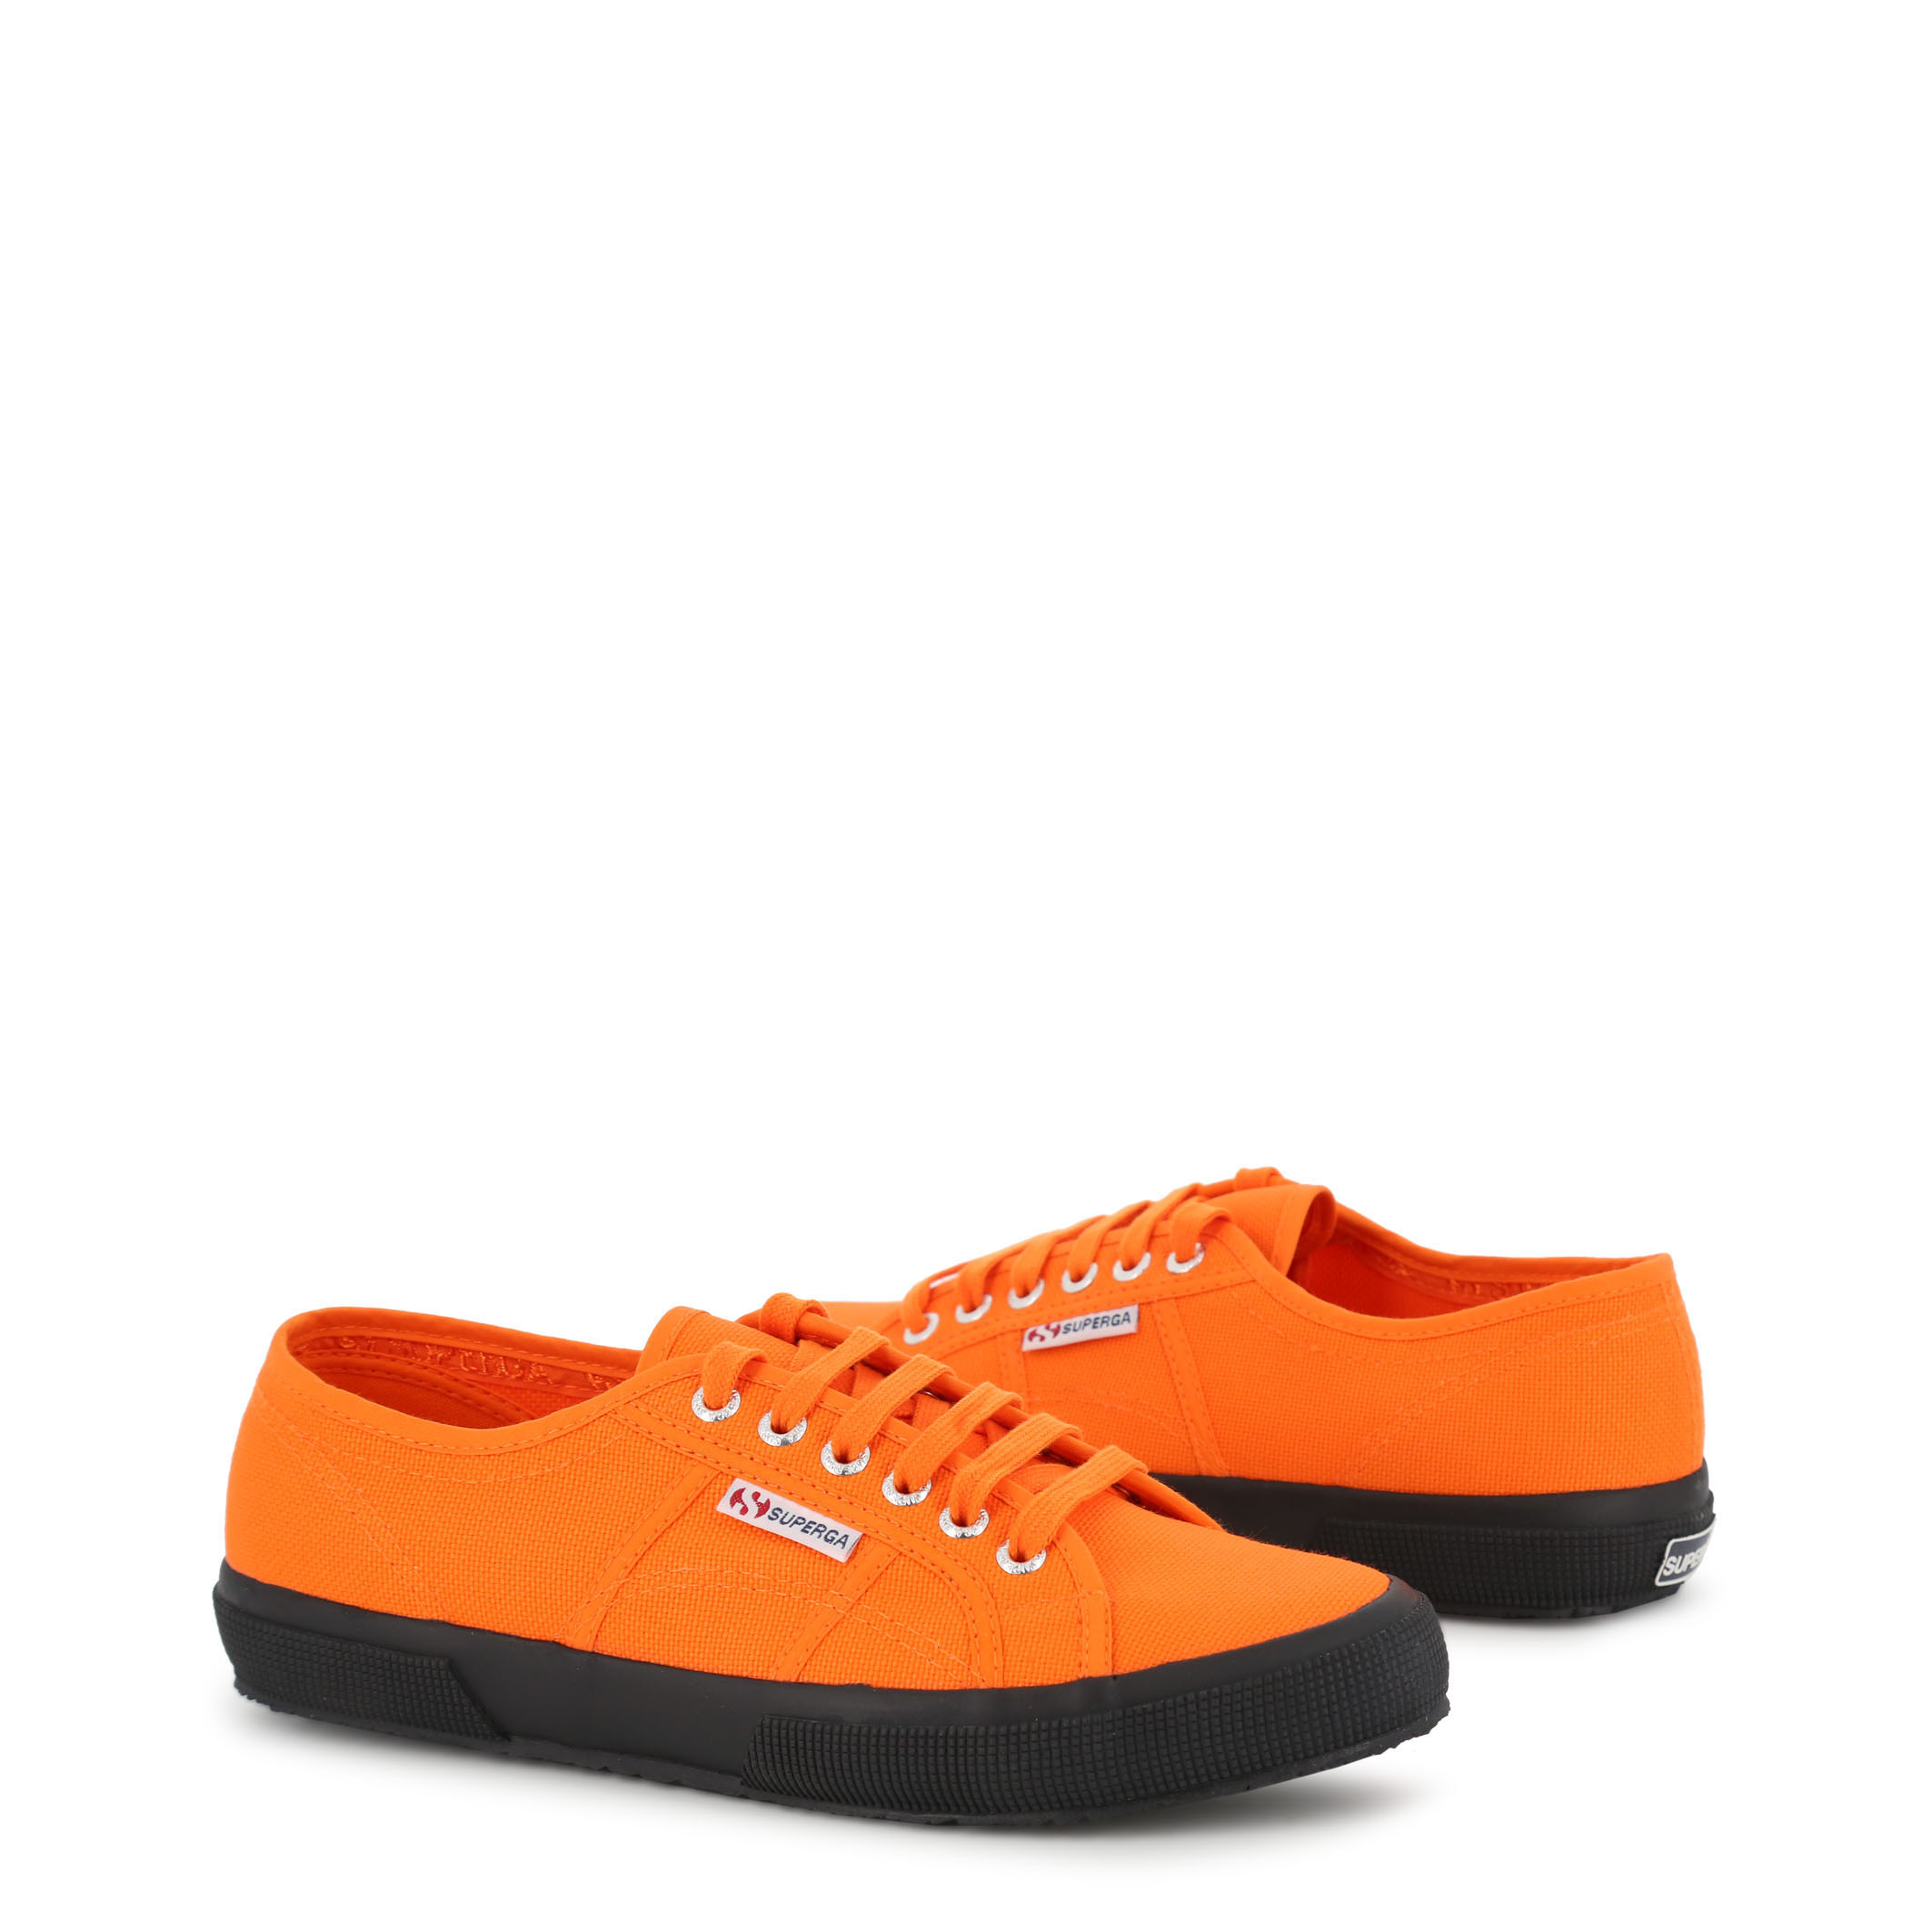 Chaussures de ville  Superga 2750-COTU-CLASSIC orange